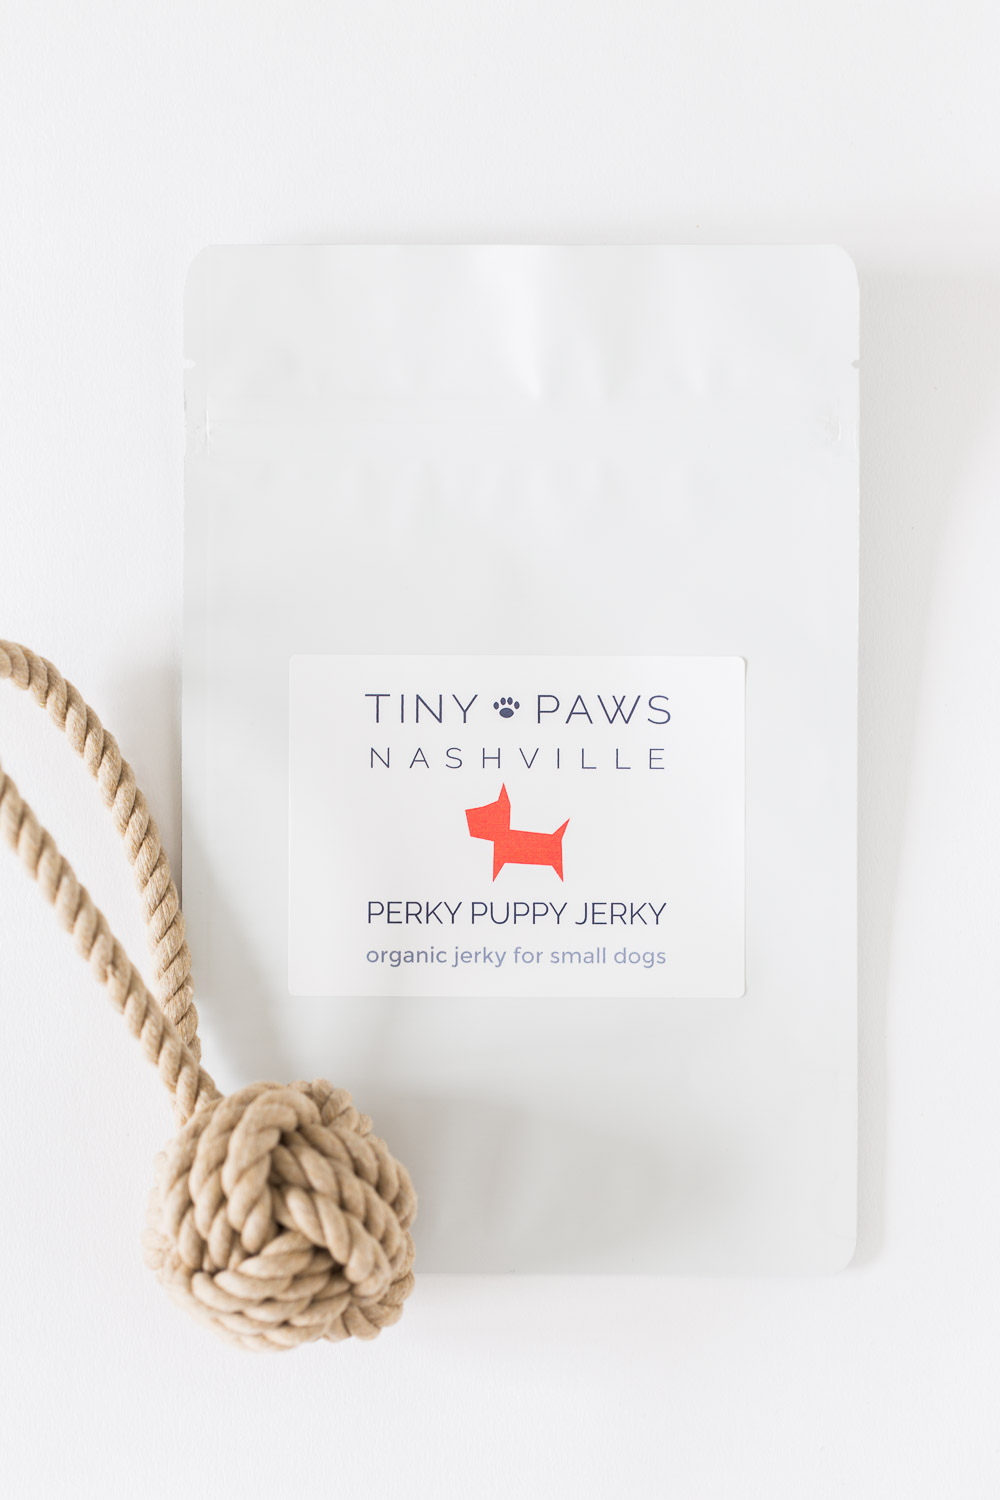 ©AlyssaRosenheck2015 A Branding Co with Tiny Paws Nashville